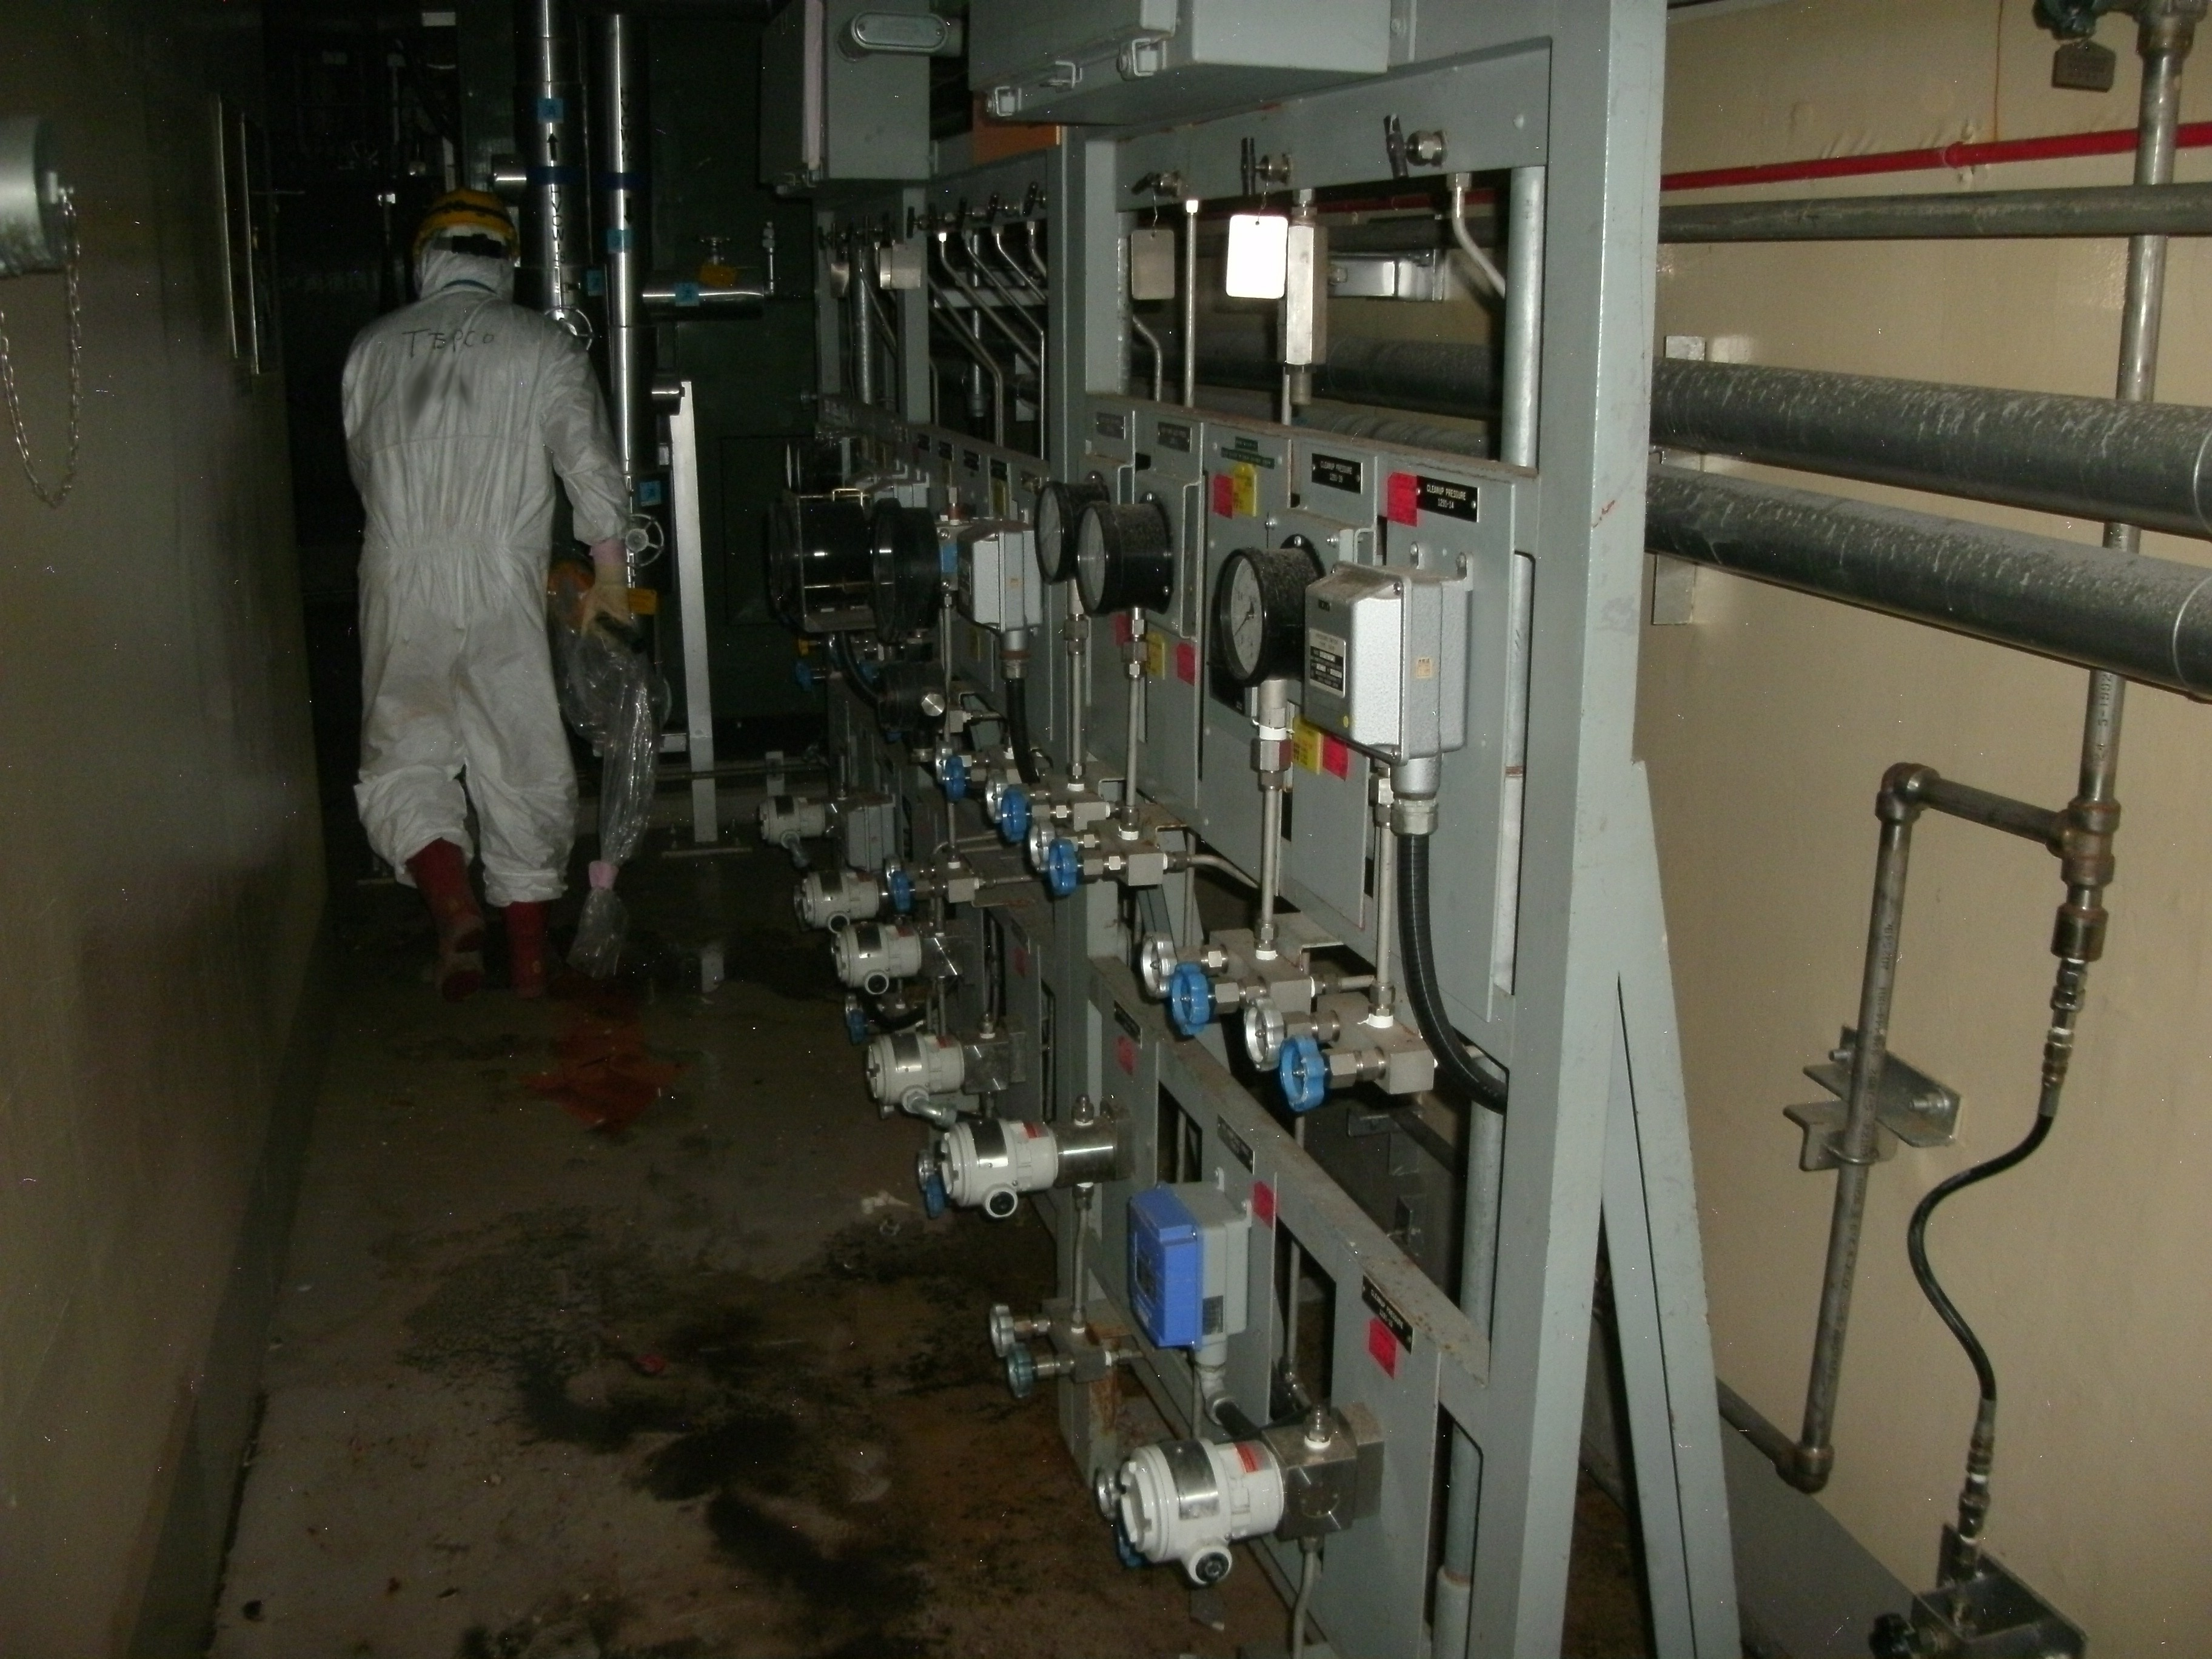 North side of the second floor, Fukushima Daiichi Nuclear Power Station Unit1